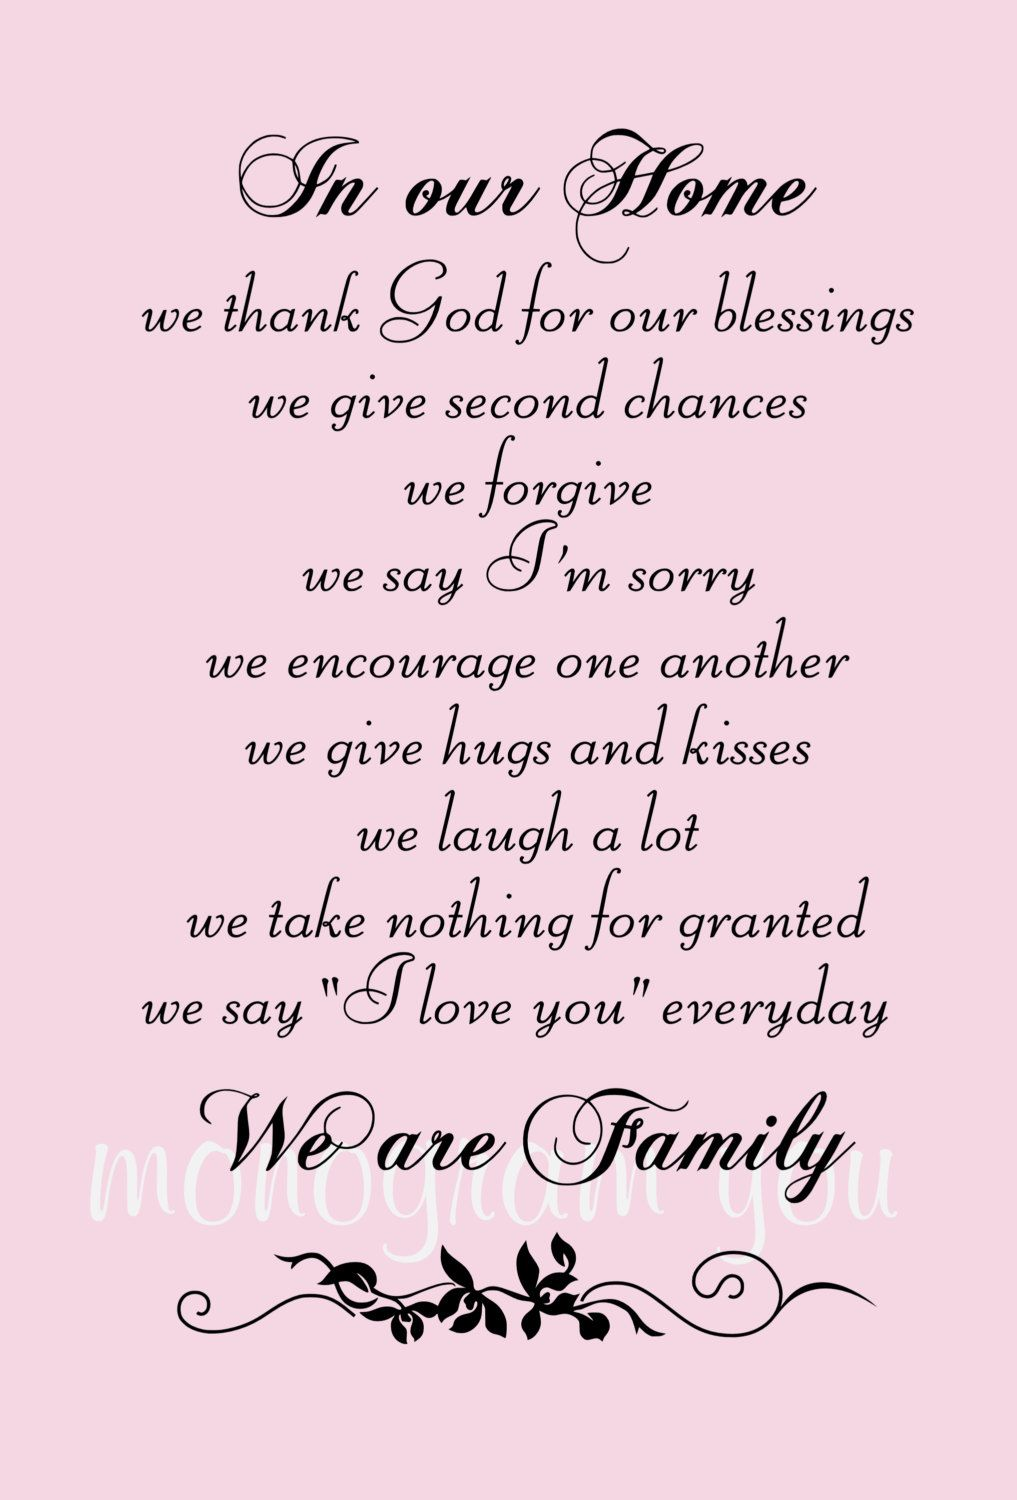 Family Wall Decal Quote In Our Home We Thank God For Our Etsy In 2020 My Family Quotes Family Wall Decals Quotes Family Quotes